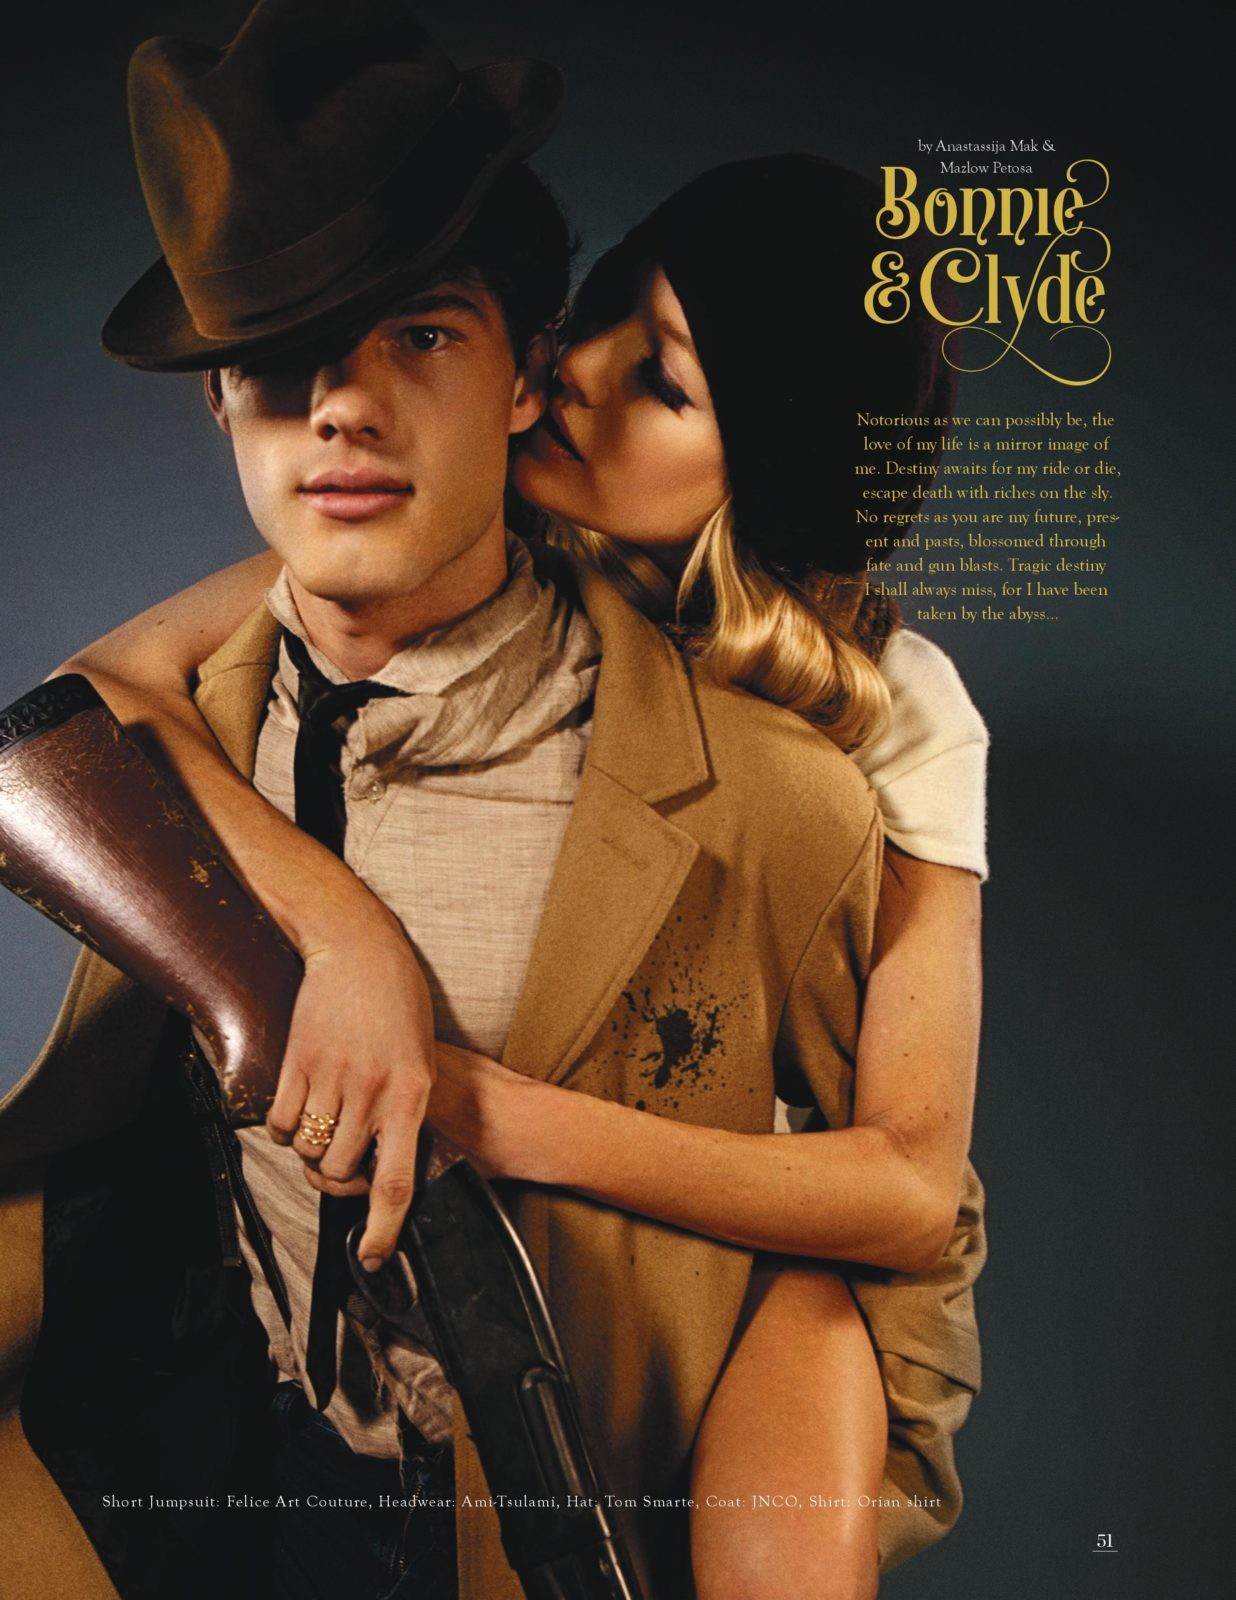 basic magazine love stories bonnie and clyde